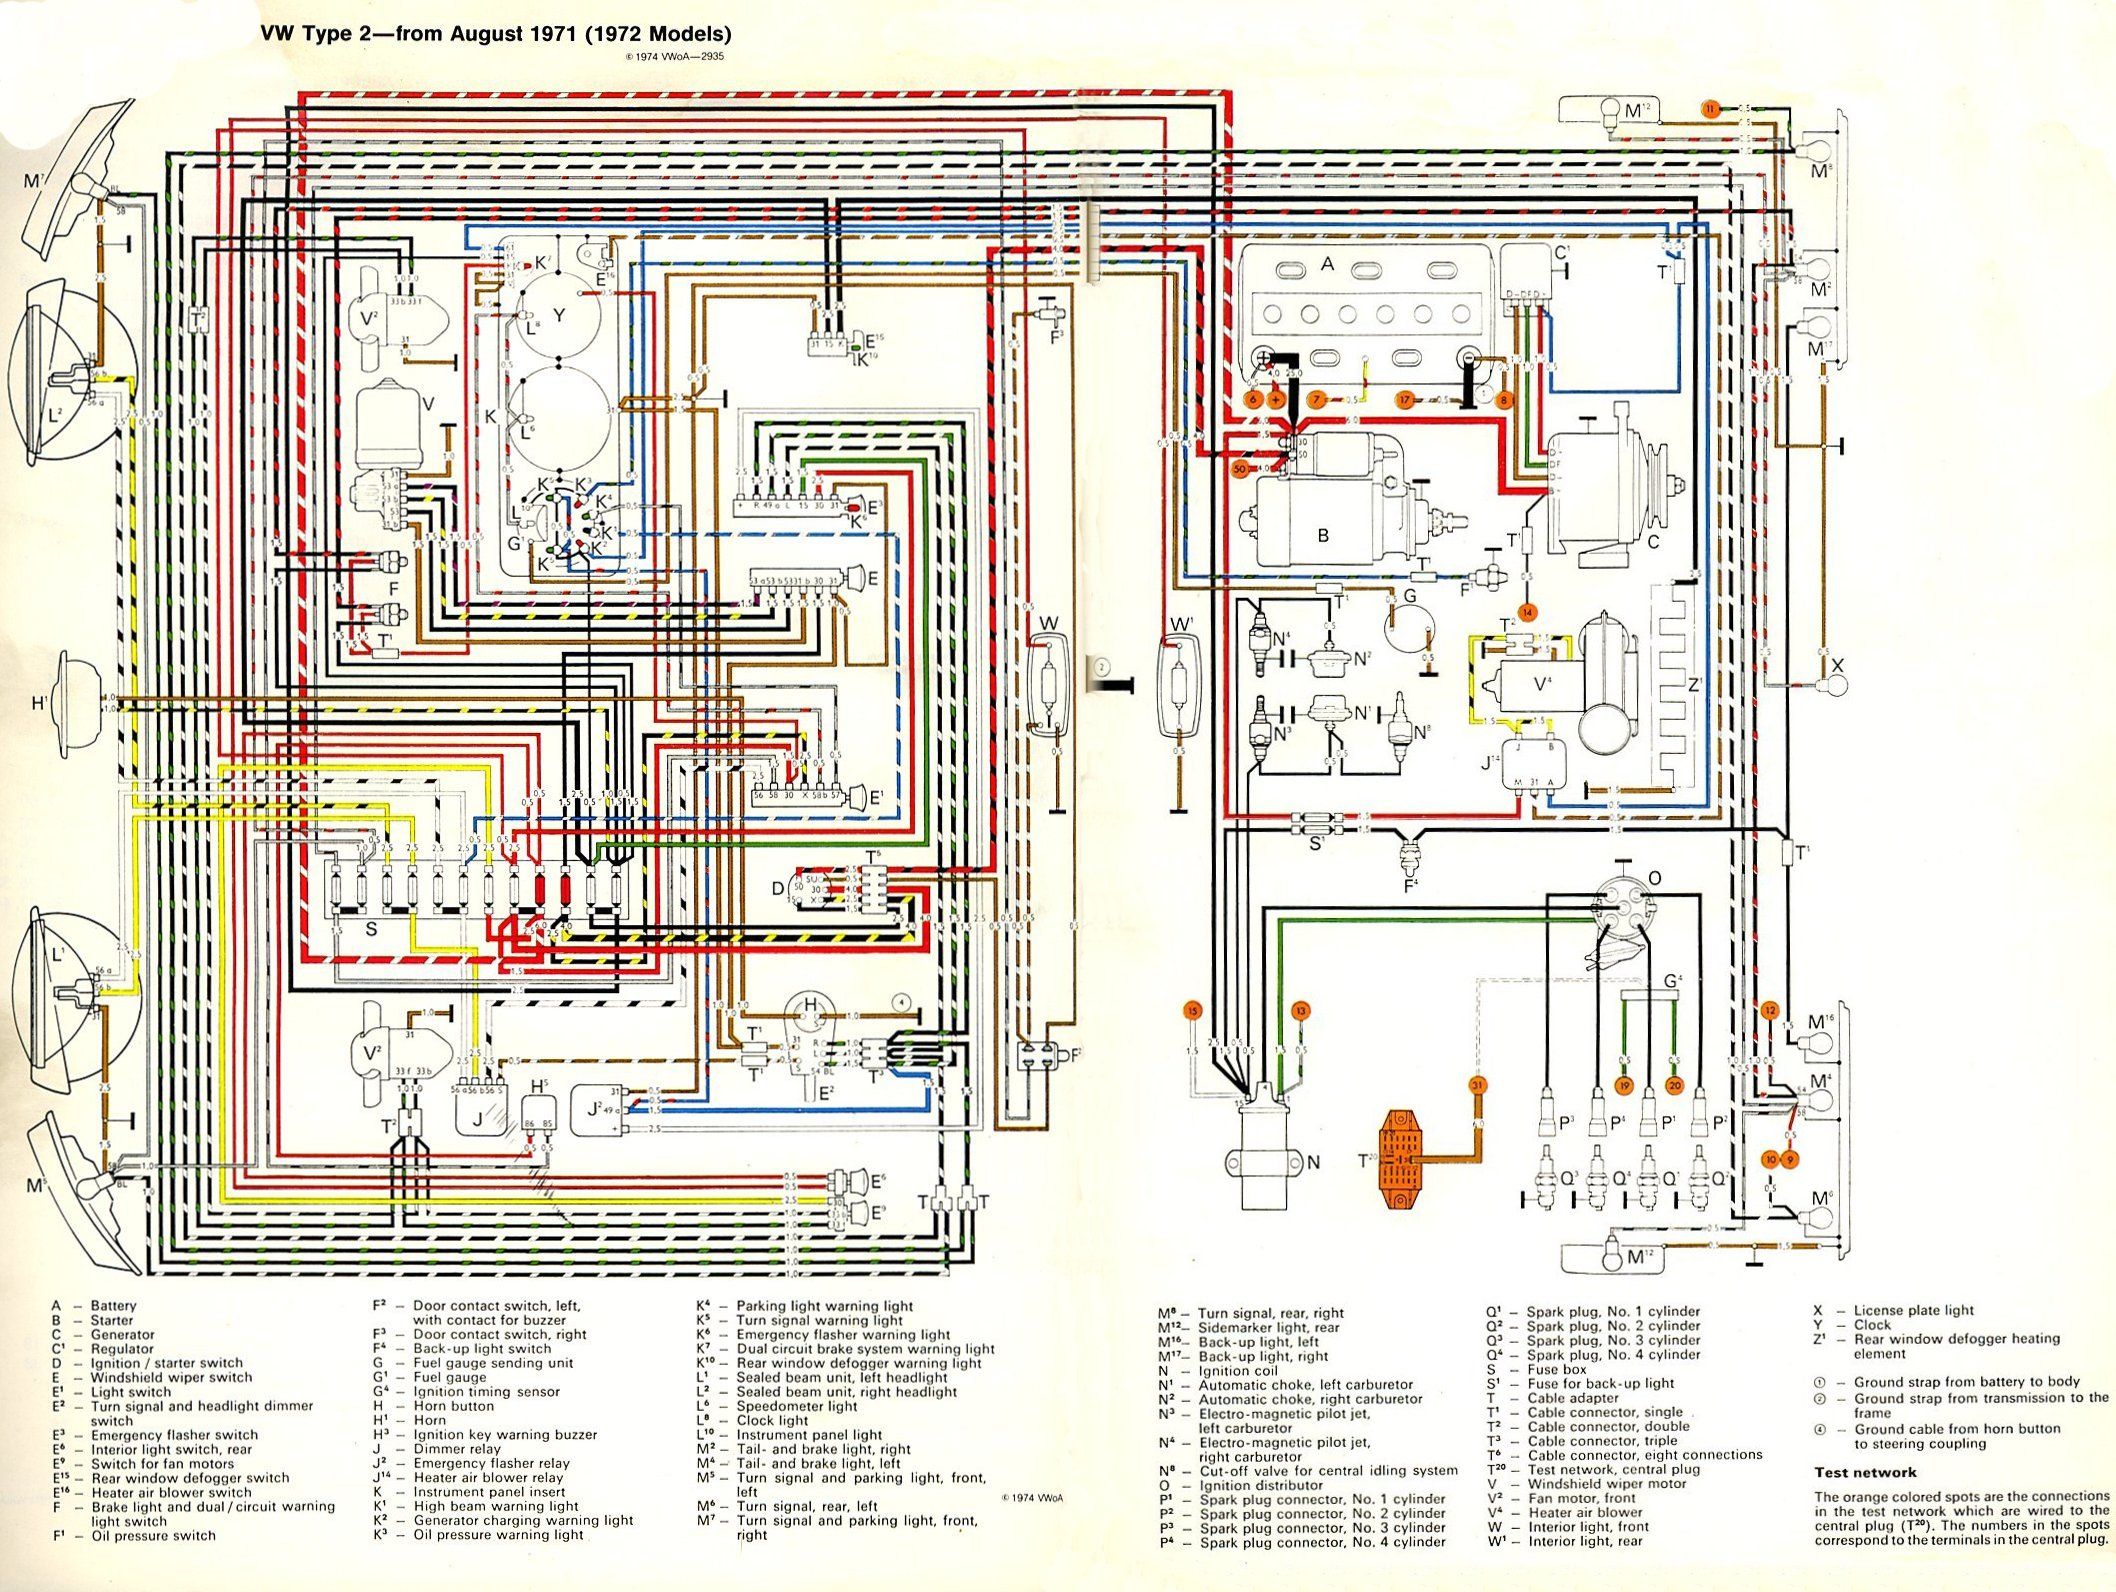 1972 vw bus wiring diagram nl pajero fuse schematic 1971 harness 2013 gti